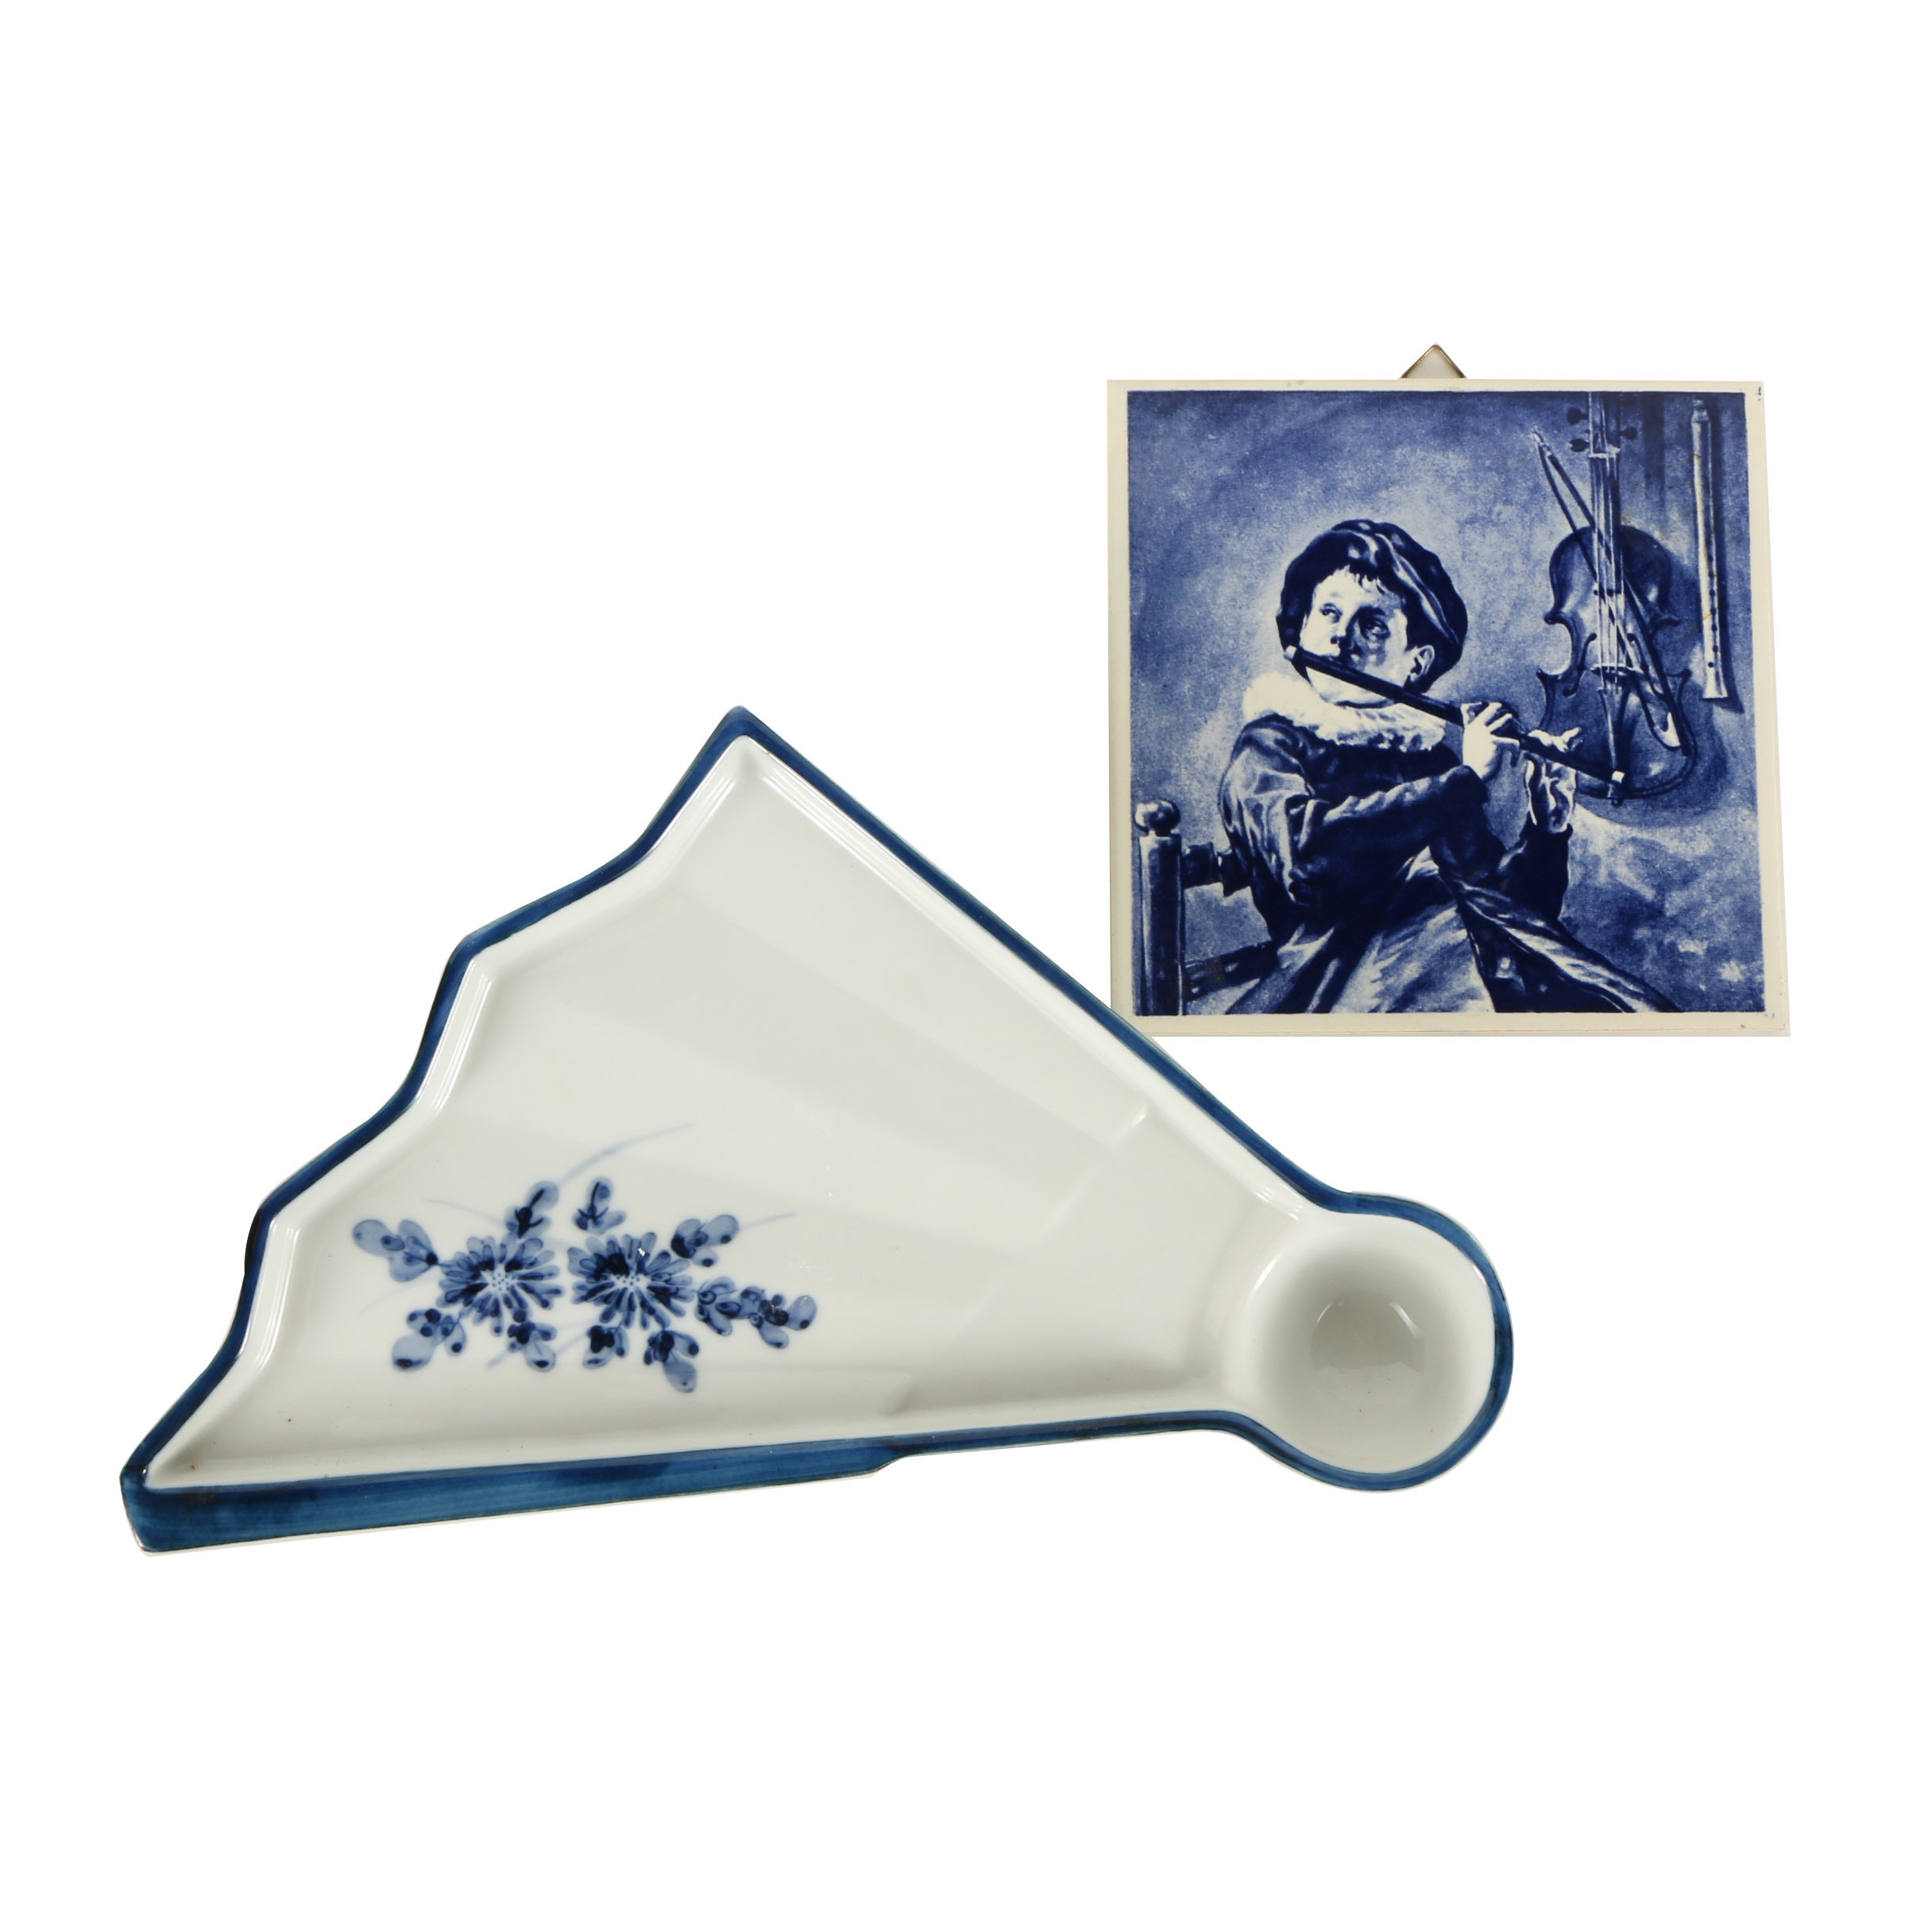 Japanese Porcelain Dish and Dutch Ceramic Tile